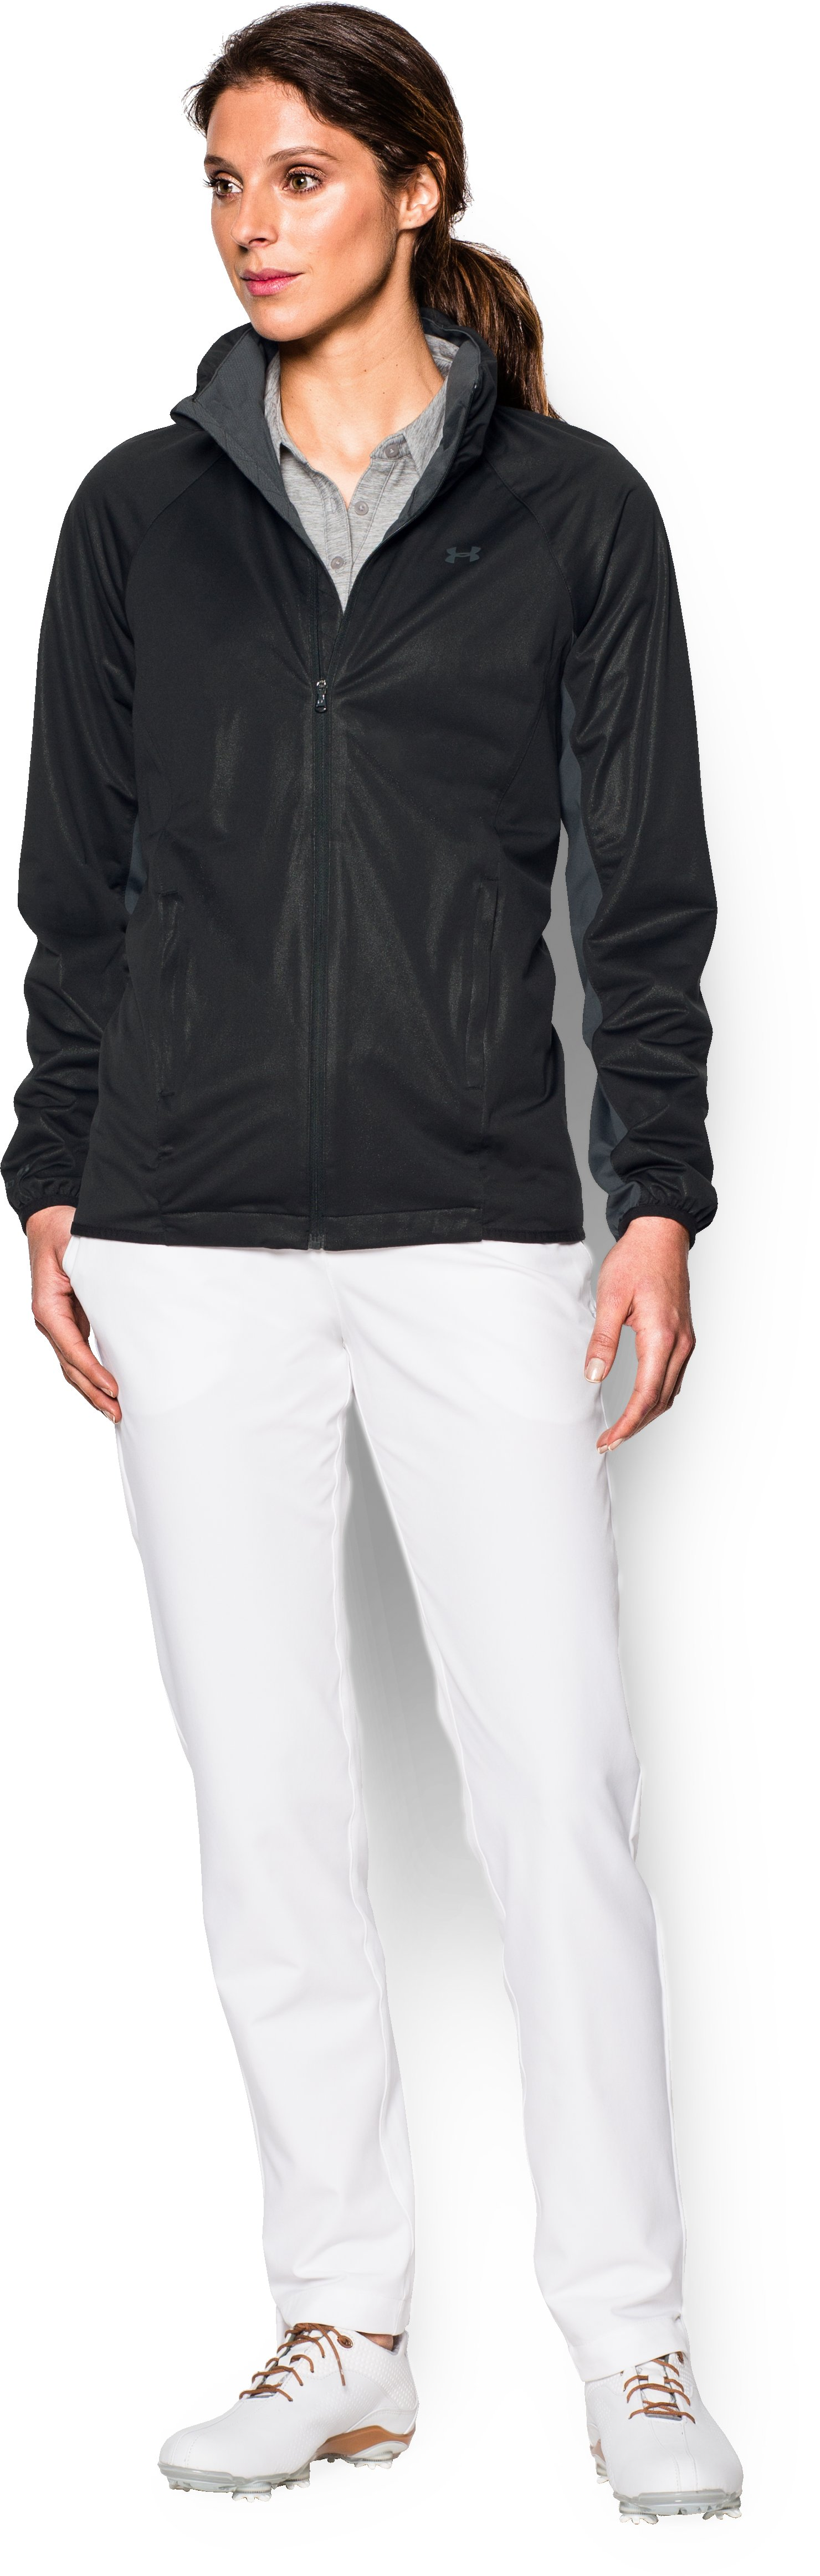 Golf jackets women